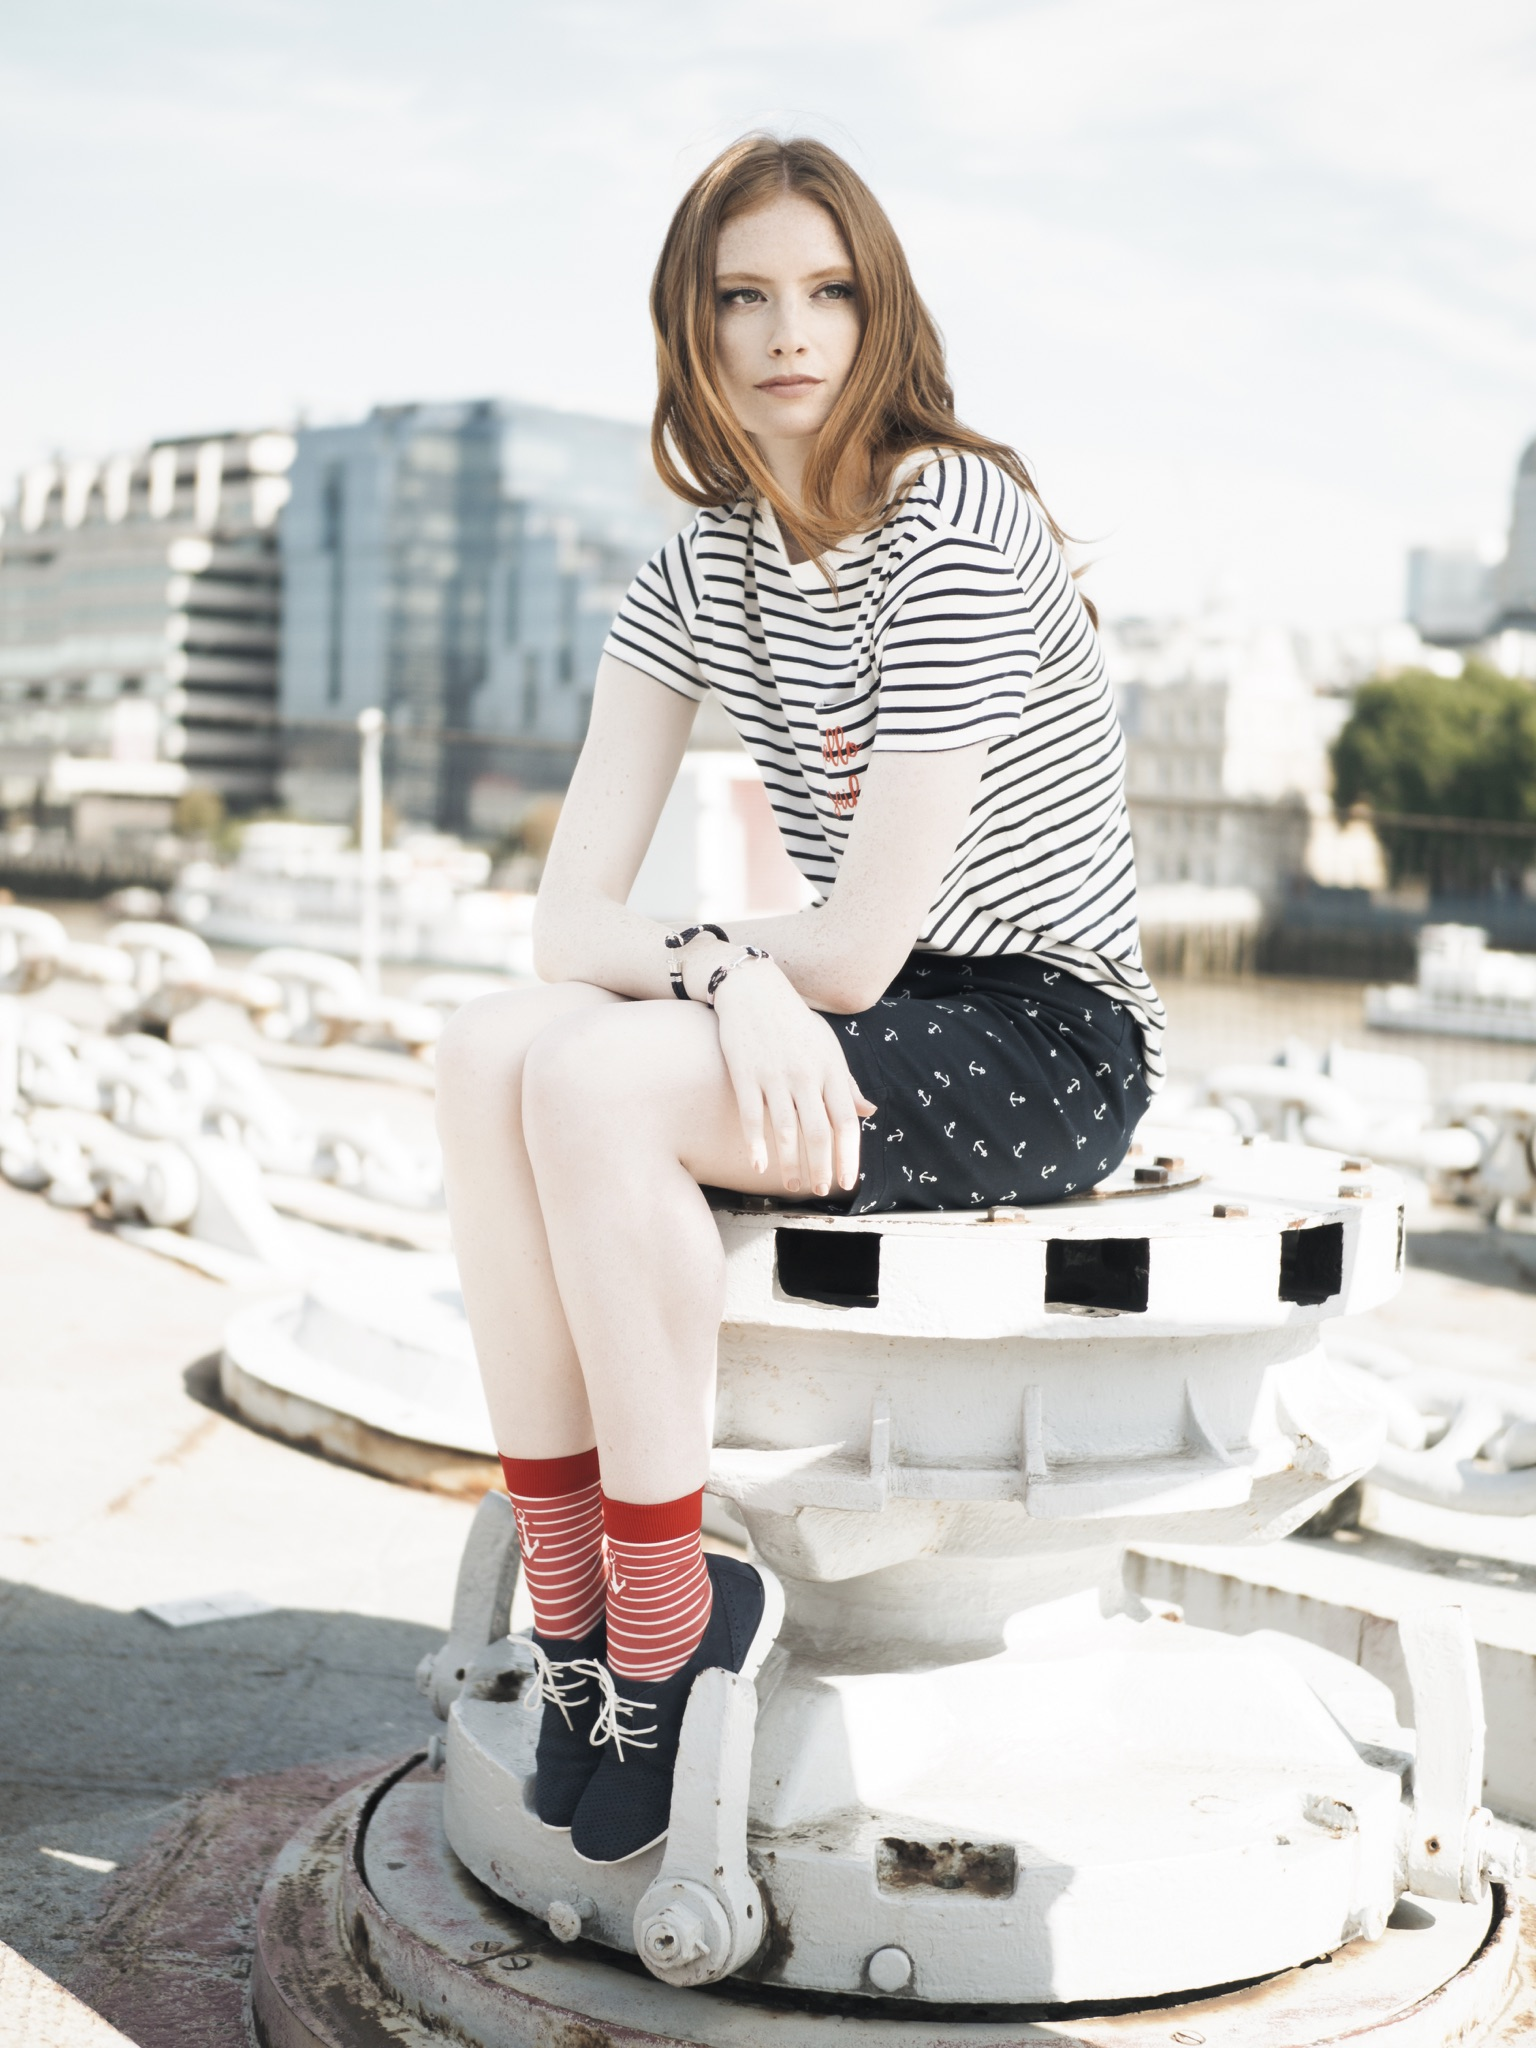 HMS Belfast Daily Express Fashion Editorial Saturday Magazine Redhead London